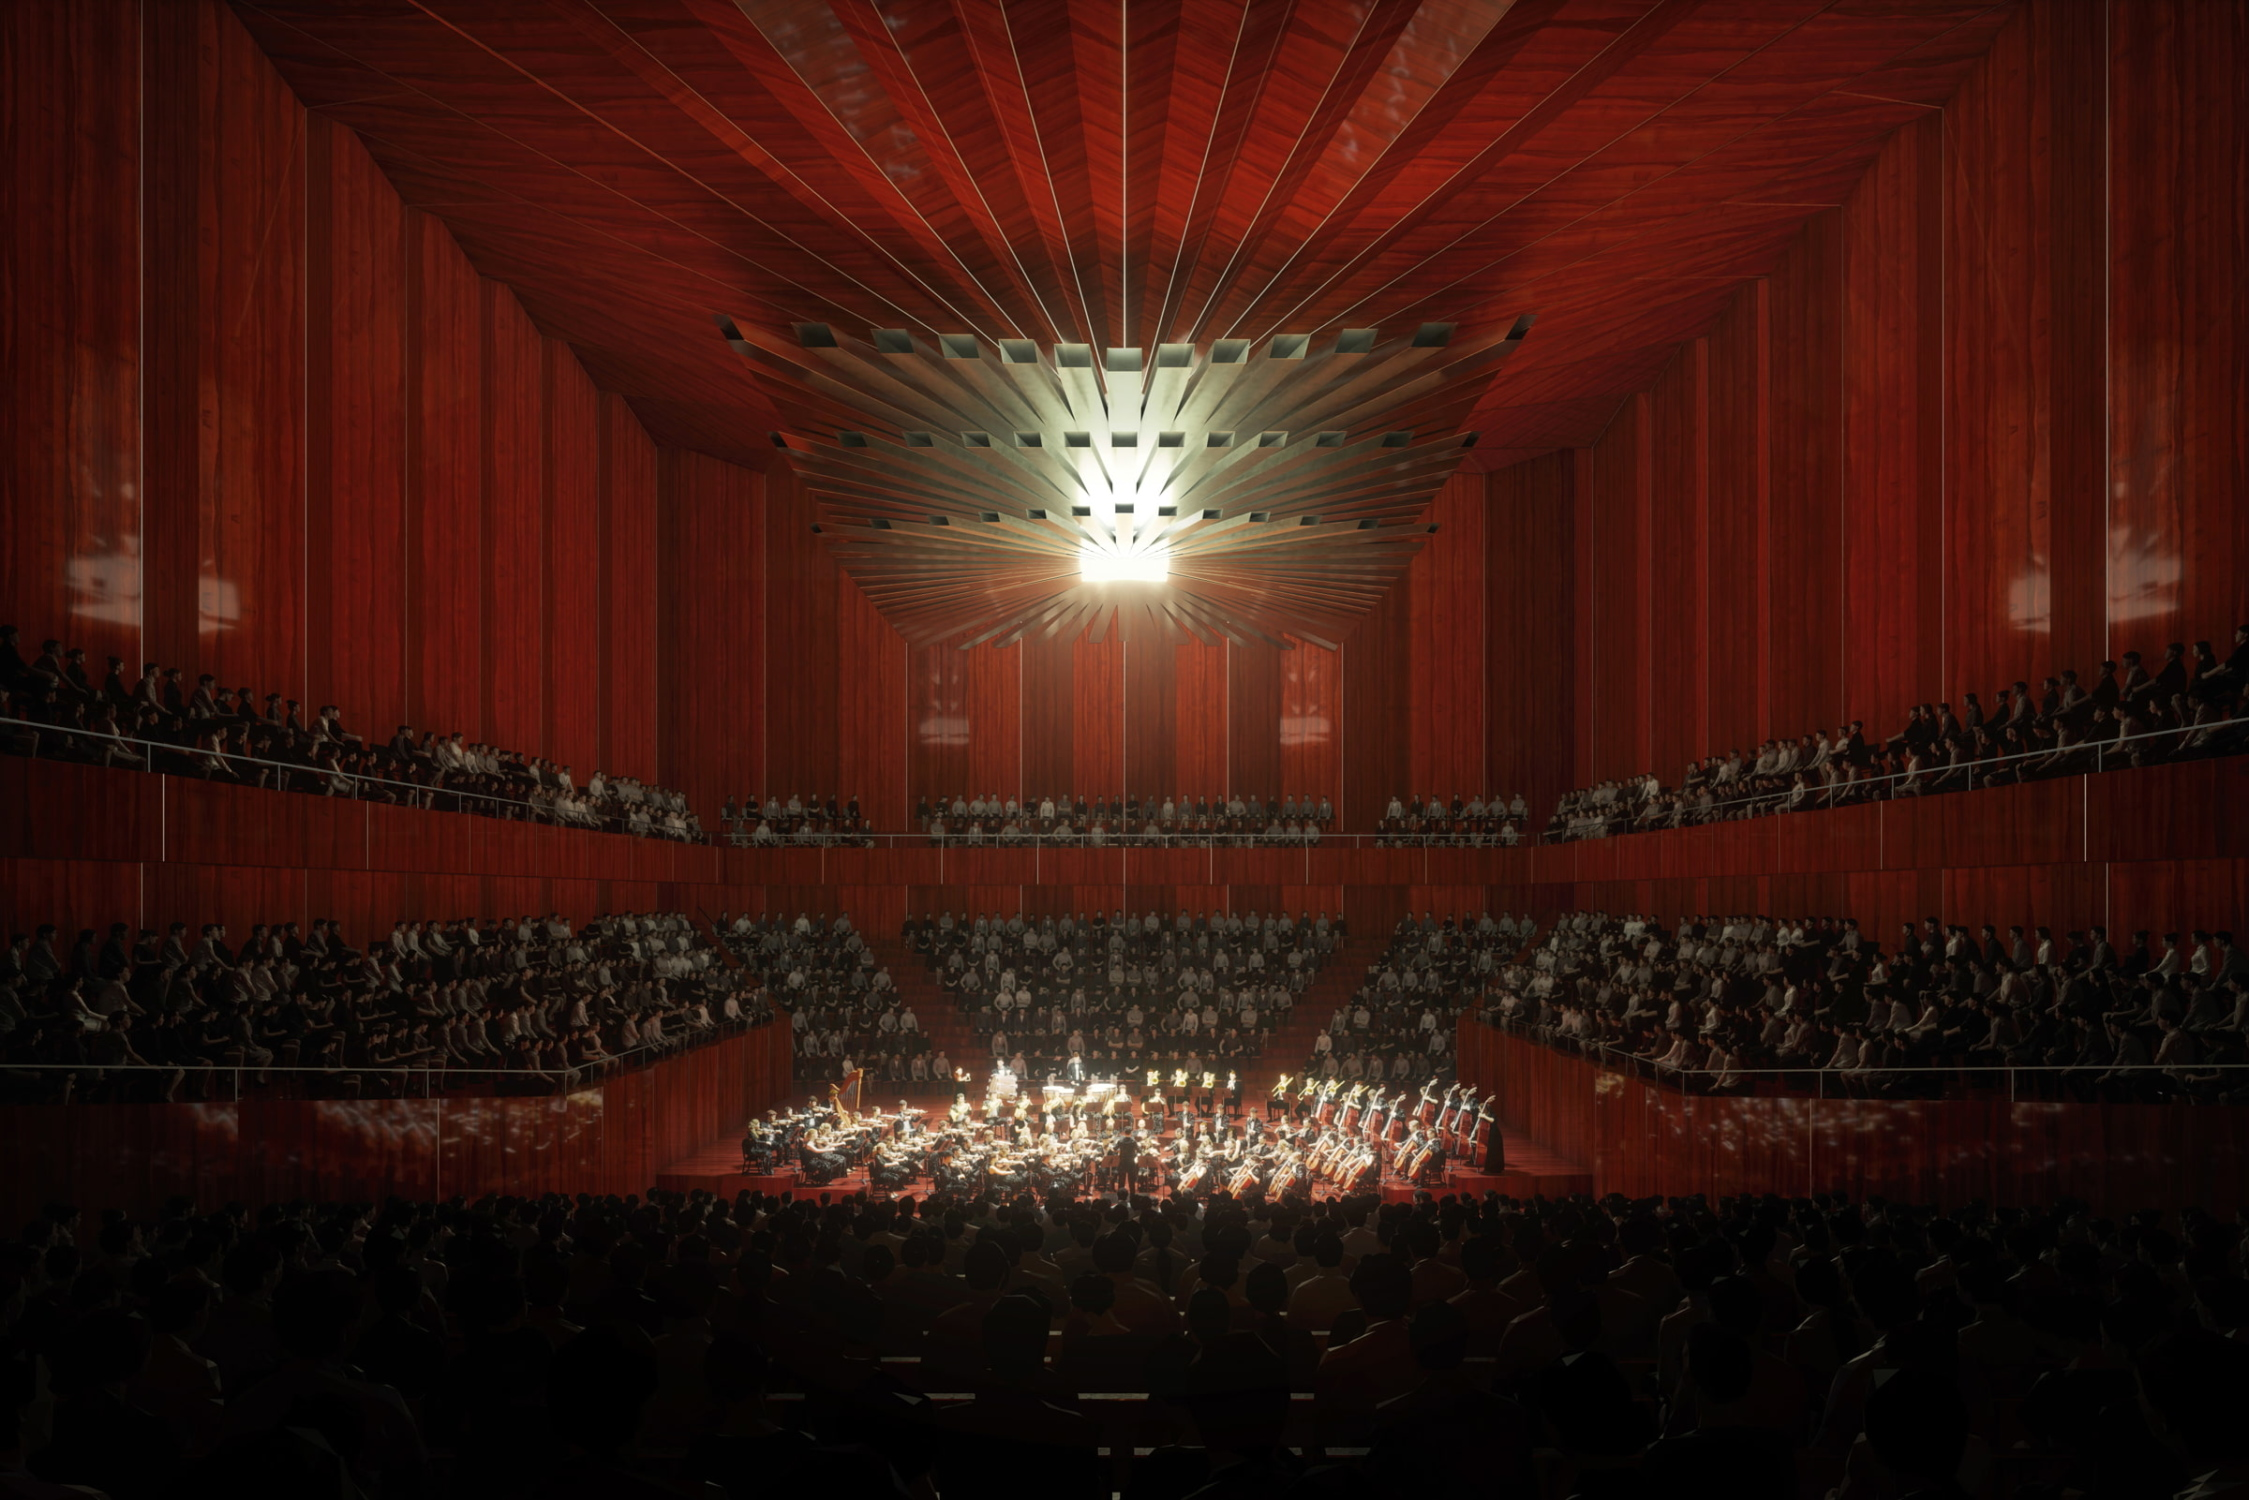 A visualization of the Shenzhen Opera House Concert Hall interior.